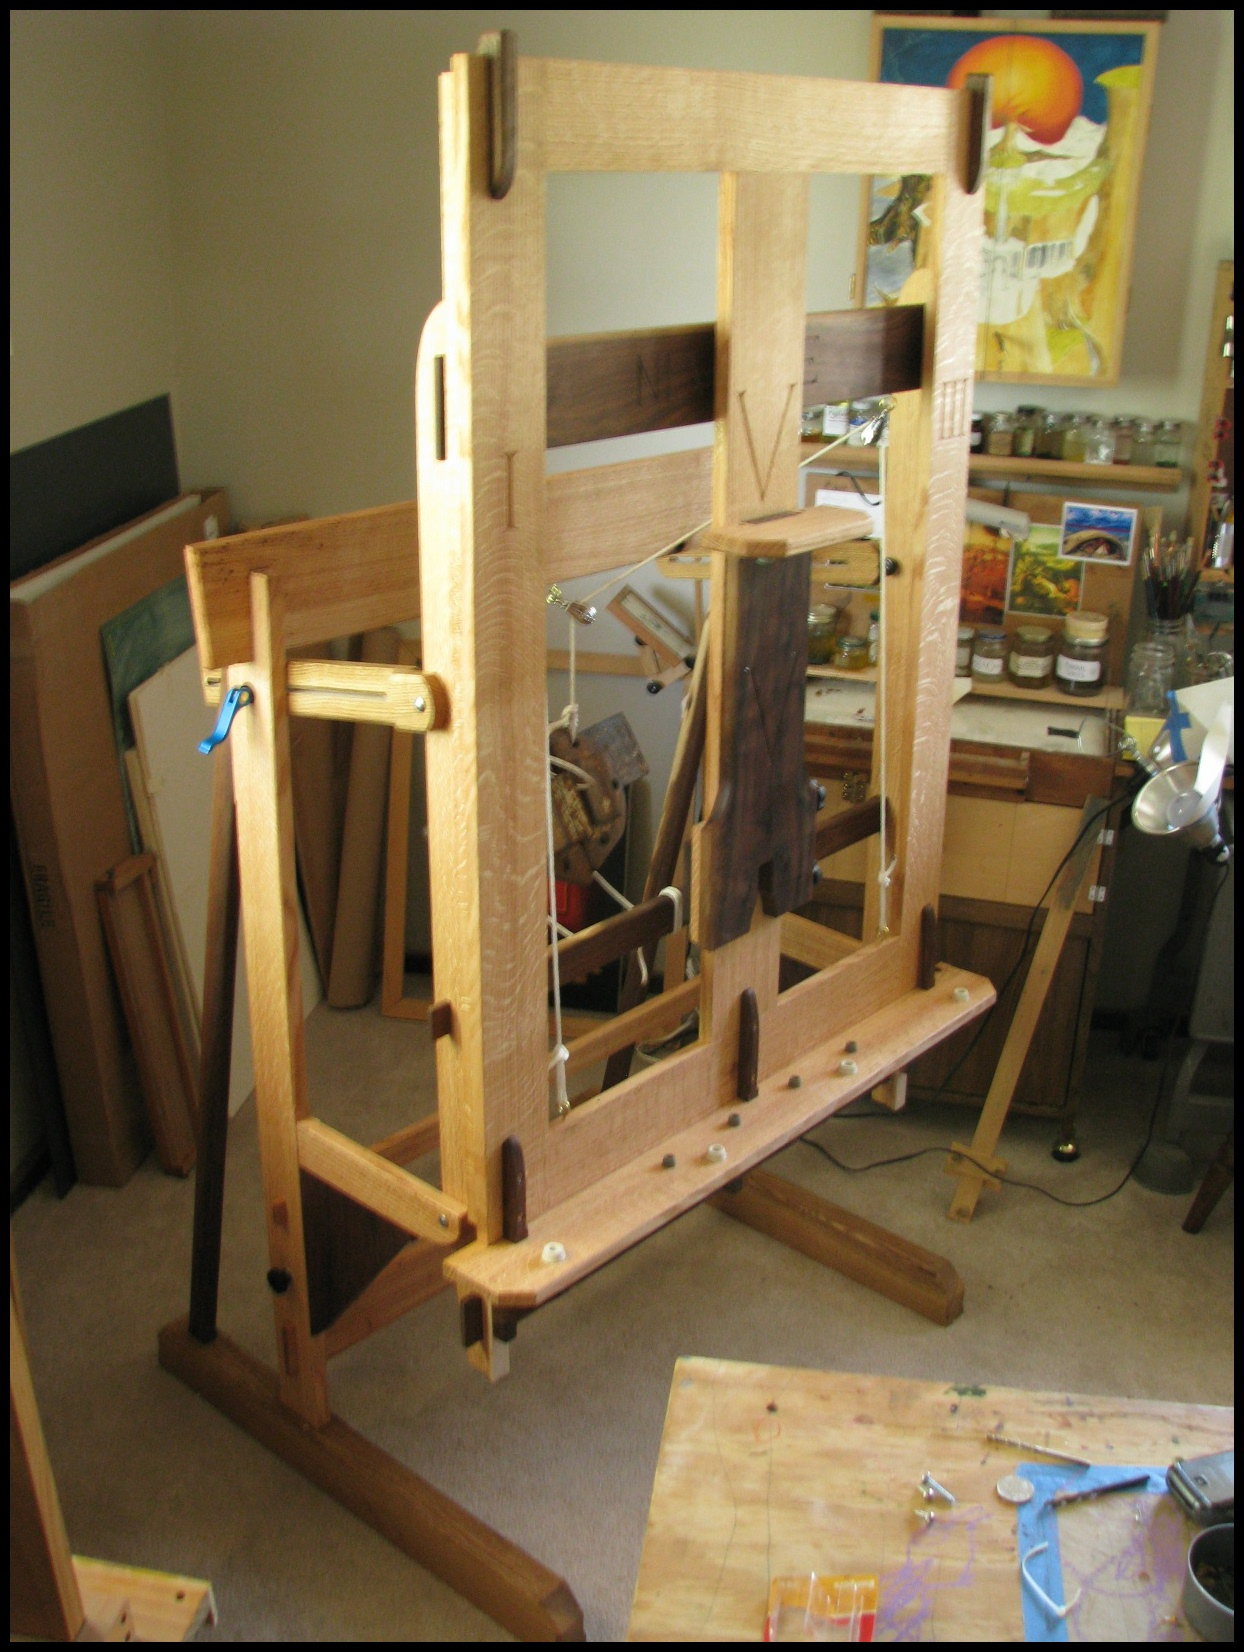 Studio Easel The School Of The Transfer Of Energy